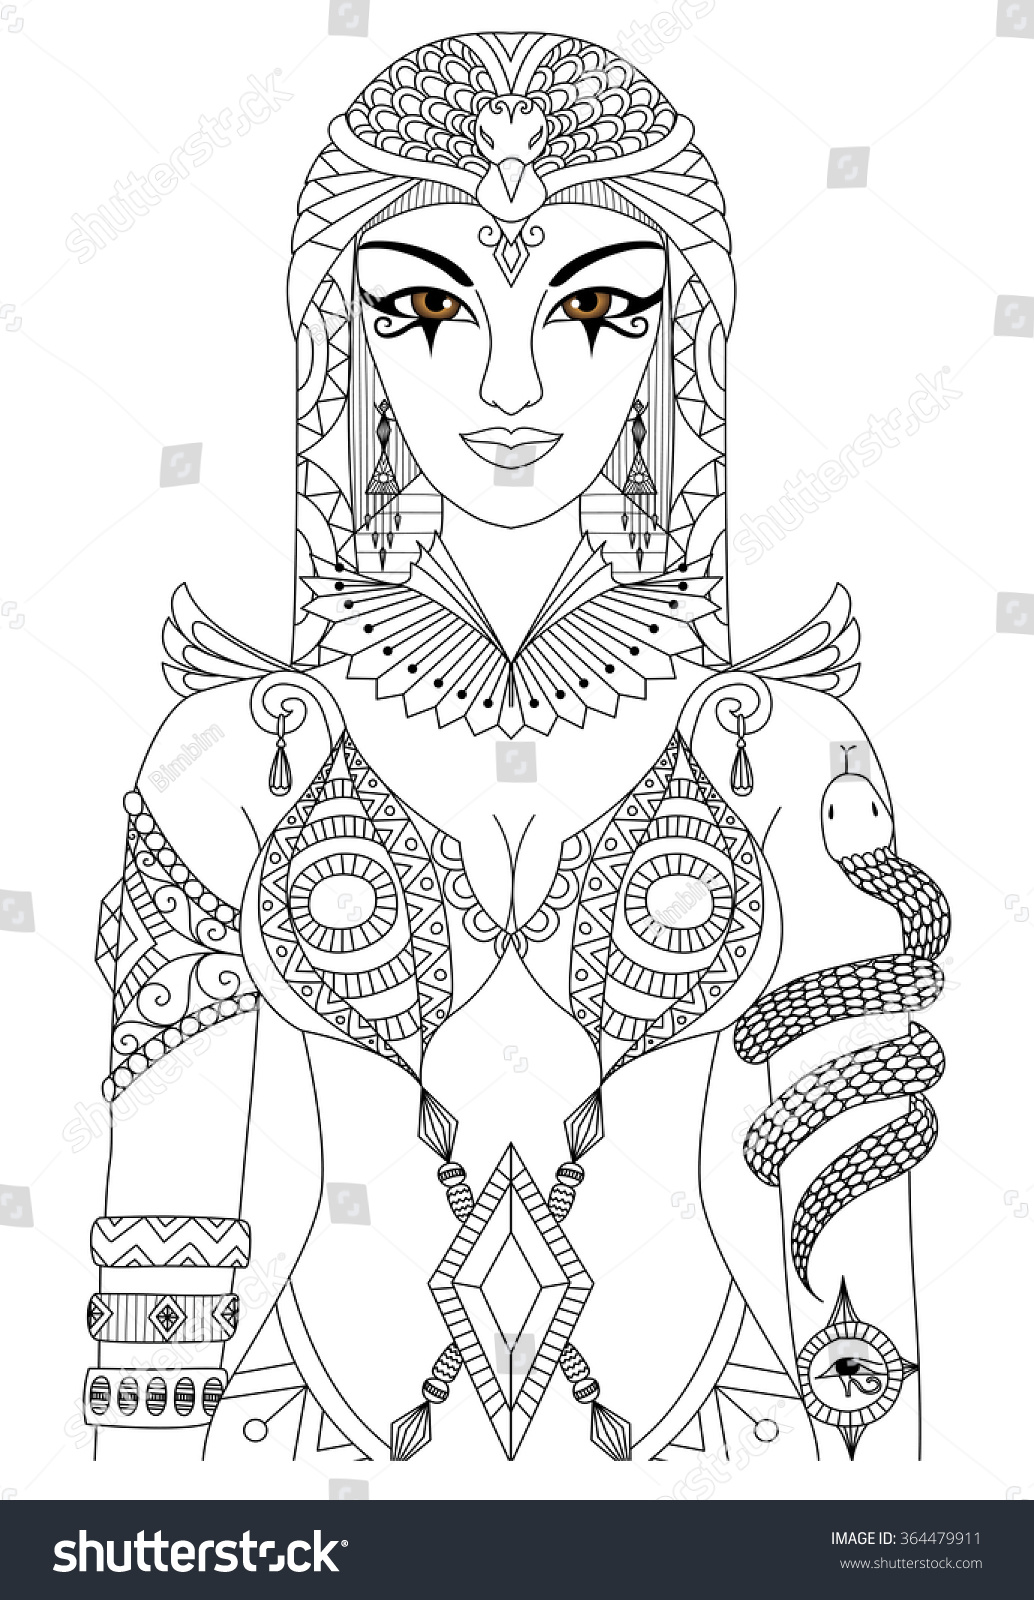 Uncategorized Cleopatra Coloring Pages zentangle cleopatra queen egypt design coloring stock vector of for book adult anti stress pages